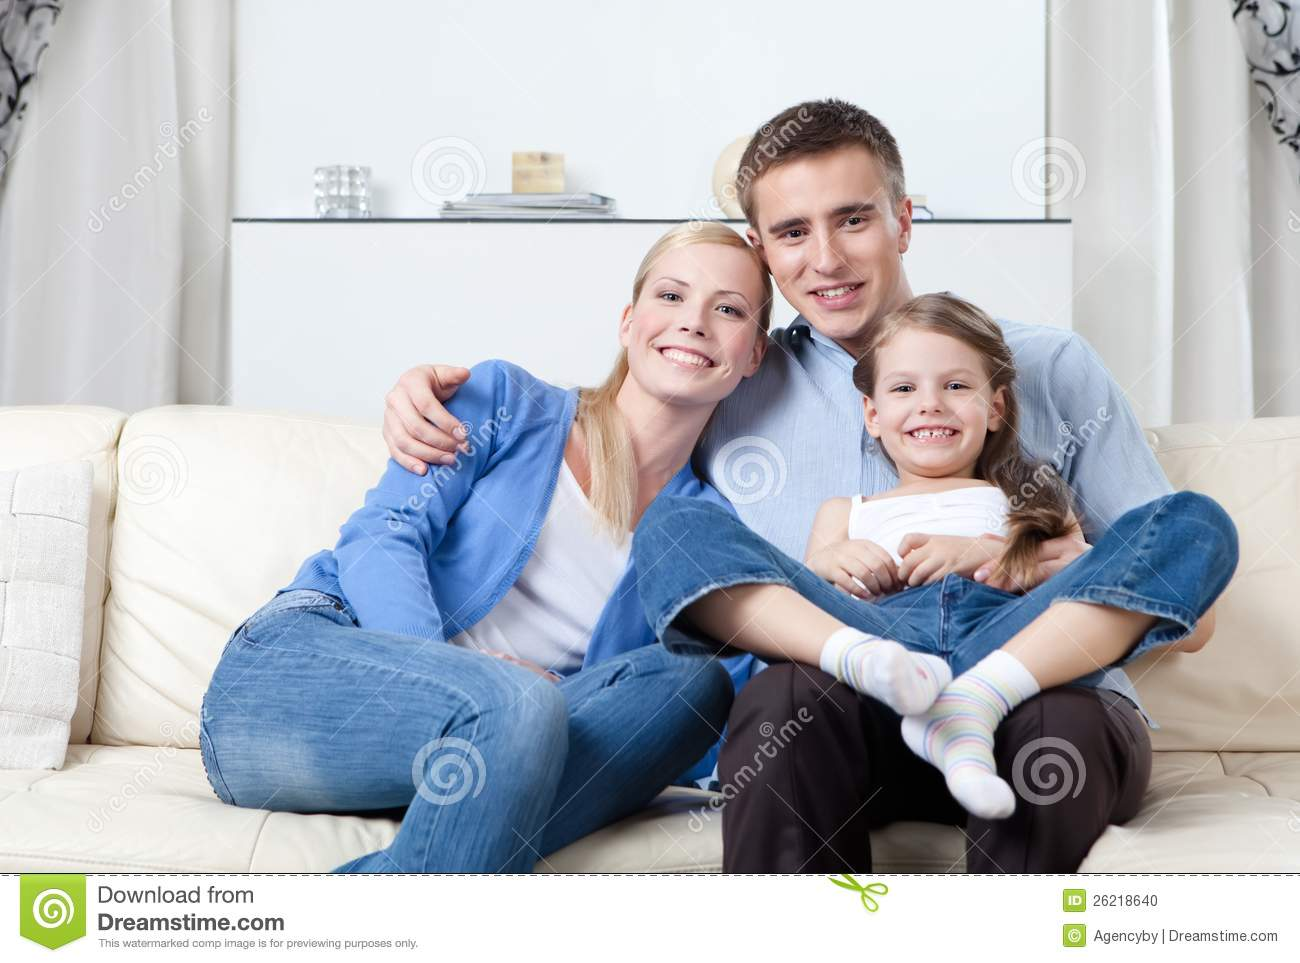 the nuclear family is no longer the norm Search results assess the view that the nuclear family is no longer the norm the definition of a nuclear family is a family that consists of a mother, father and.